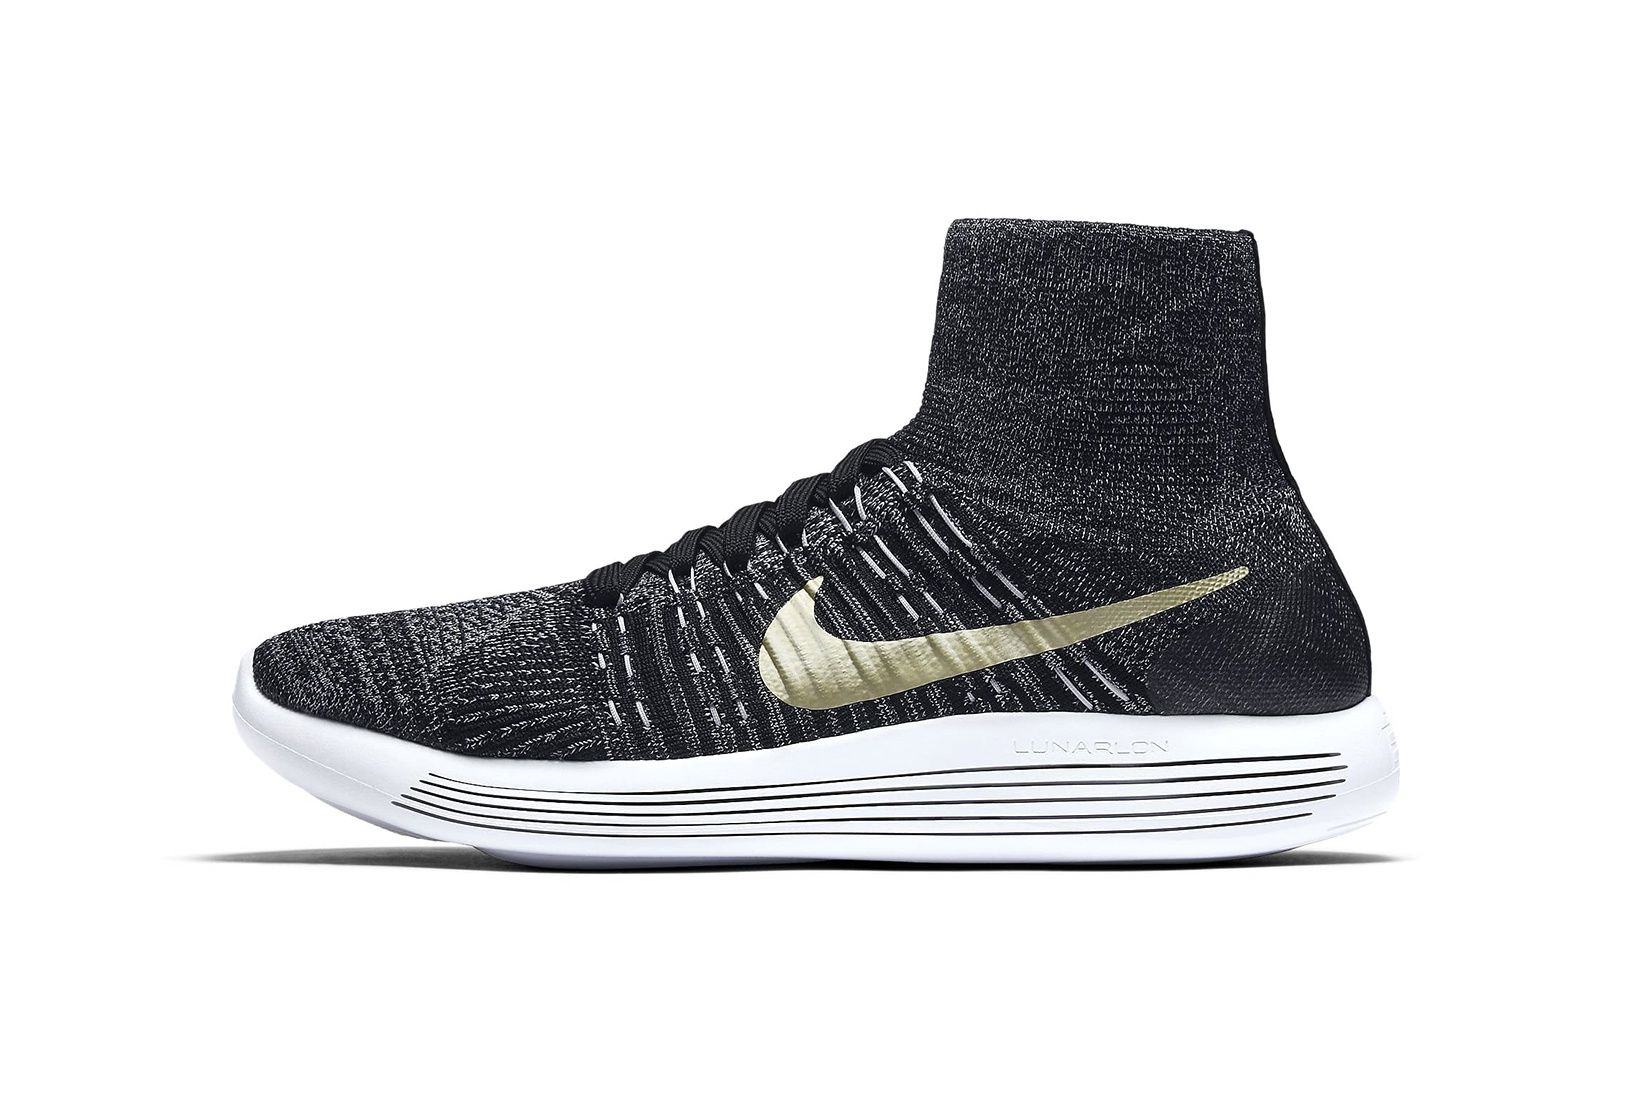 size 40 8ab61 c5cd2 nike lunarepic flyknit bhm black history month shoes